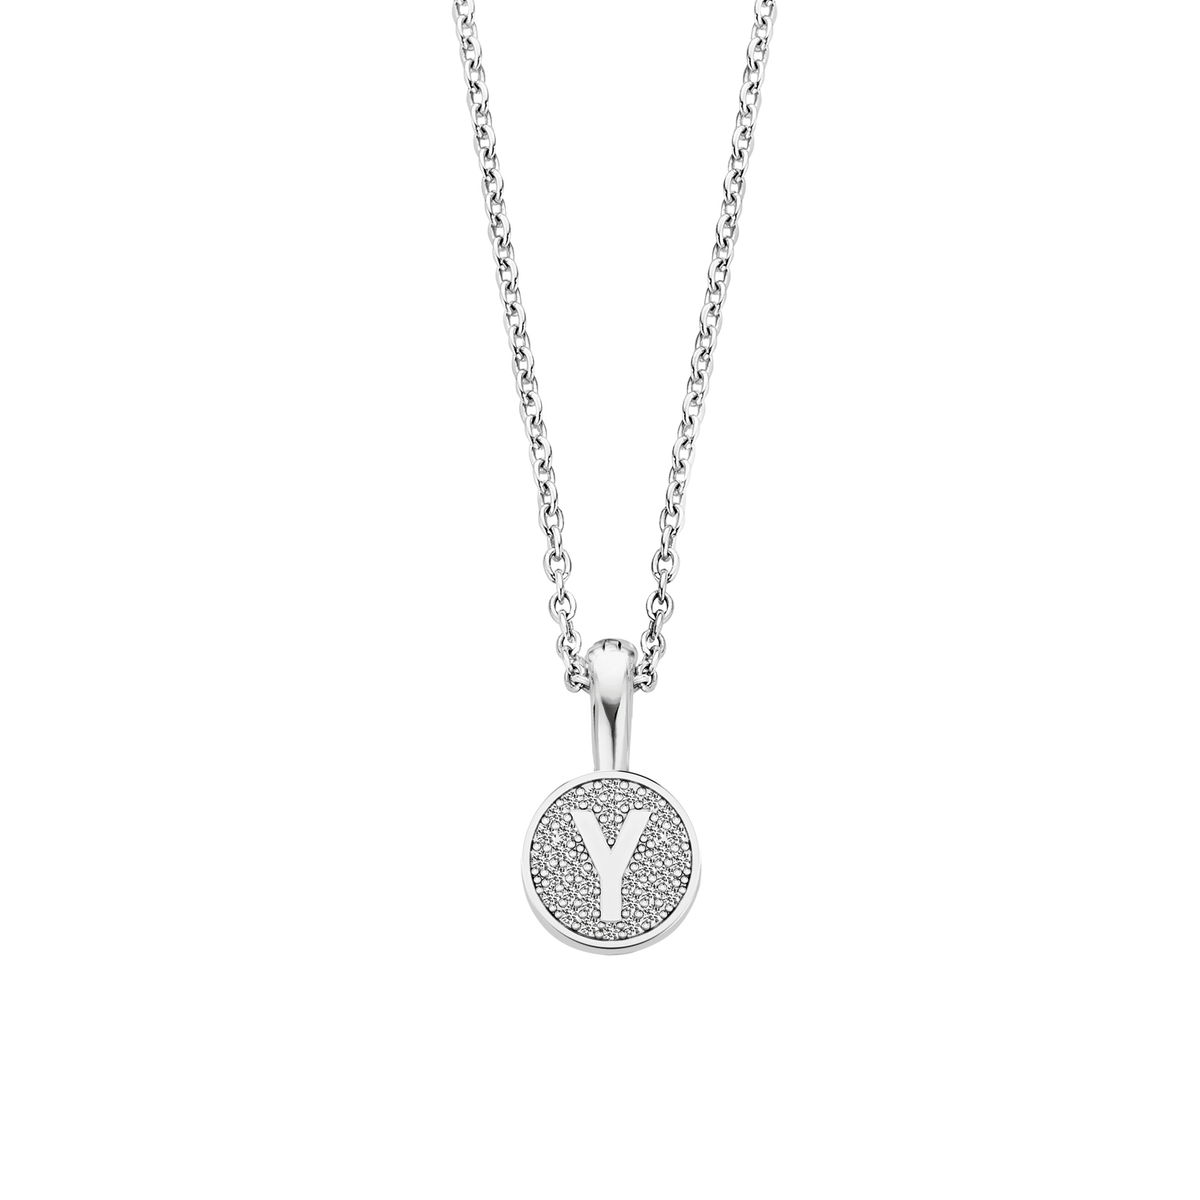 TI SENTO - Milano Necklace 3858LY